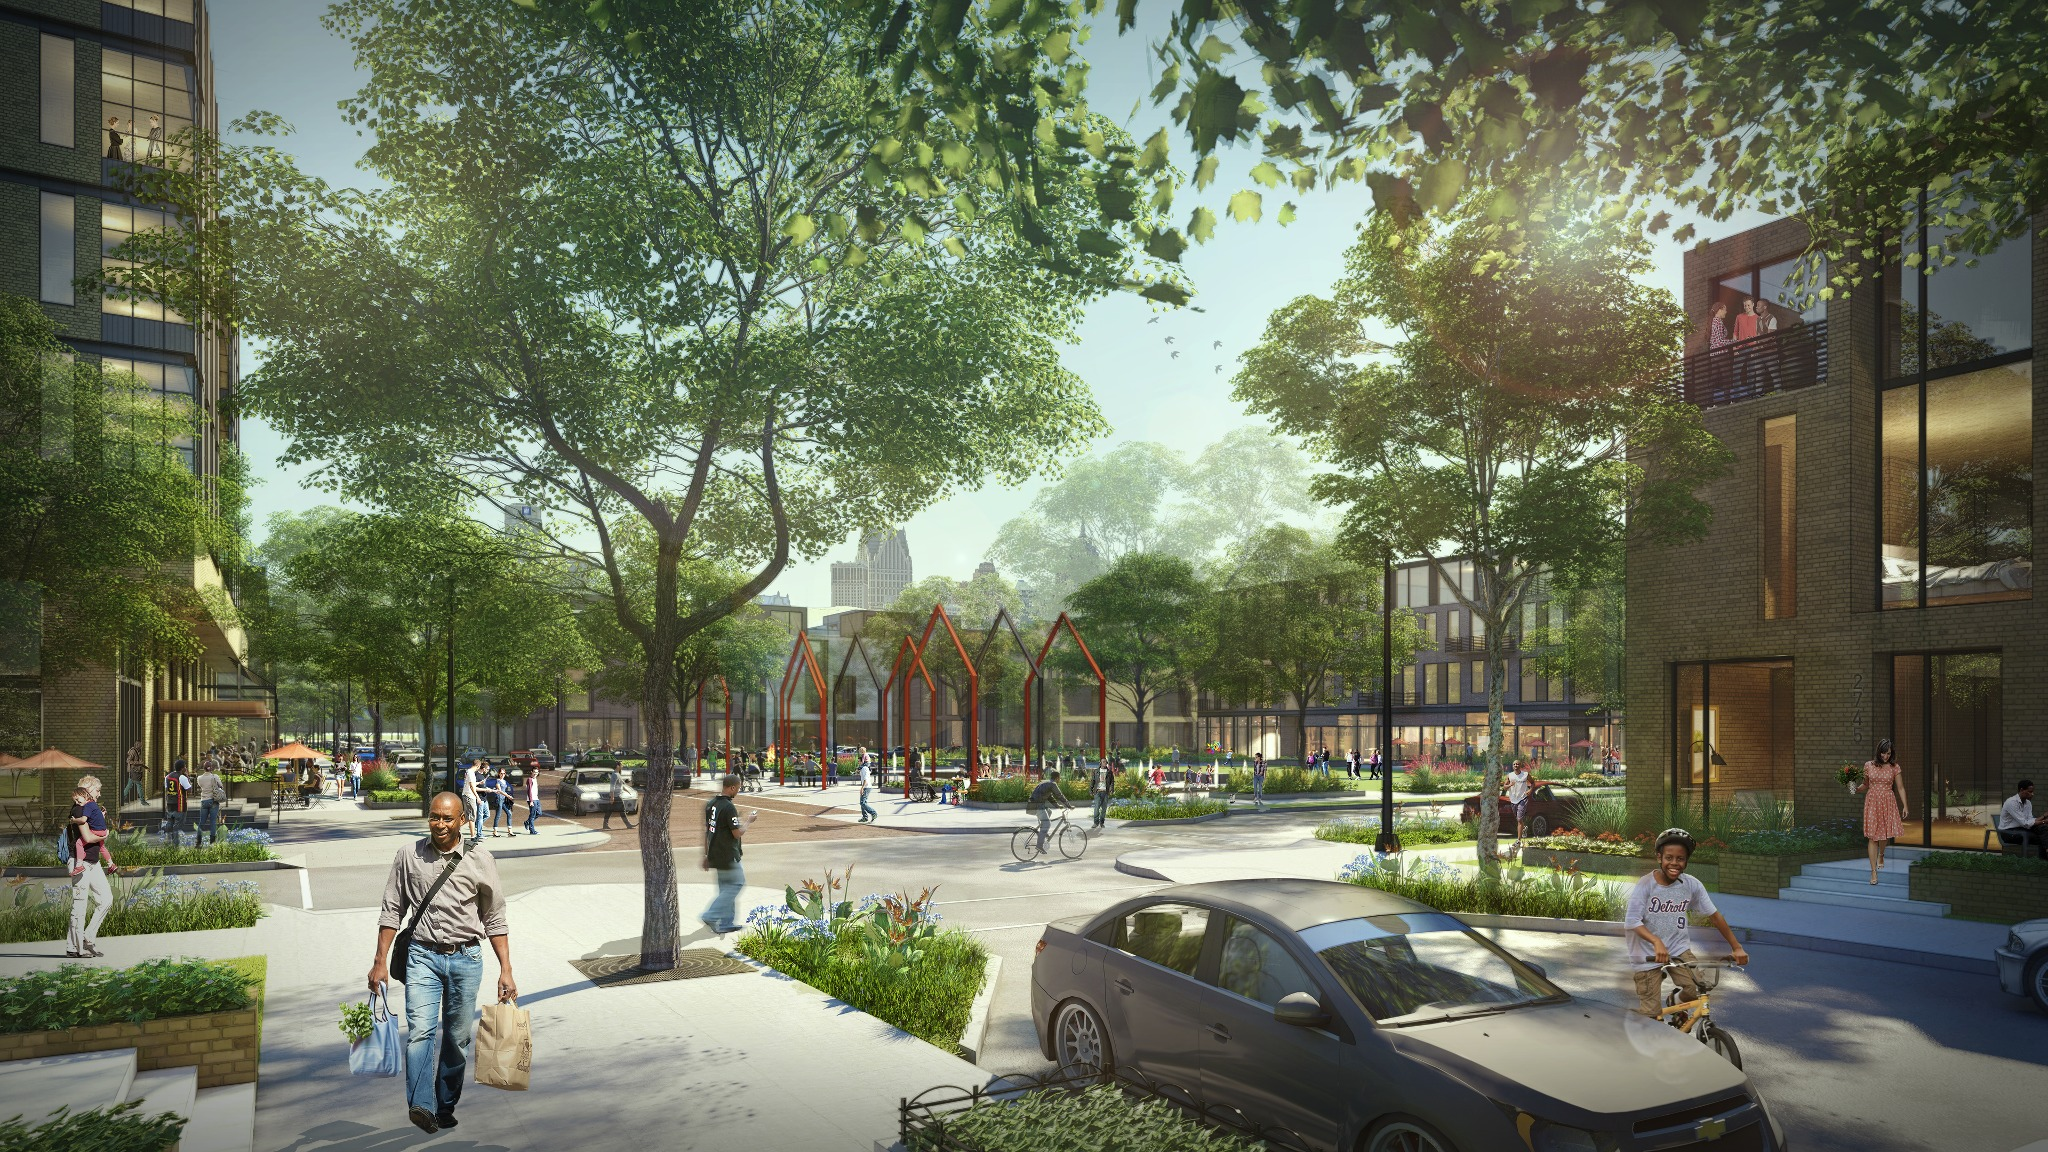 This artist rendering of the proposed development on the Brewster-Douglass site was released last July.